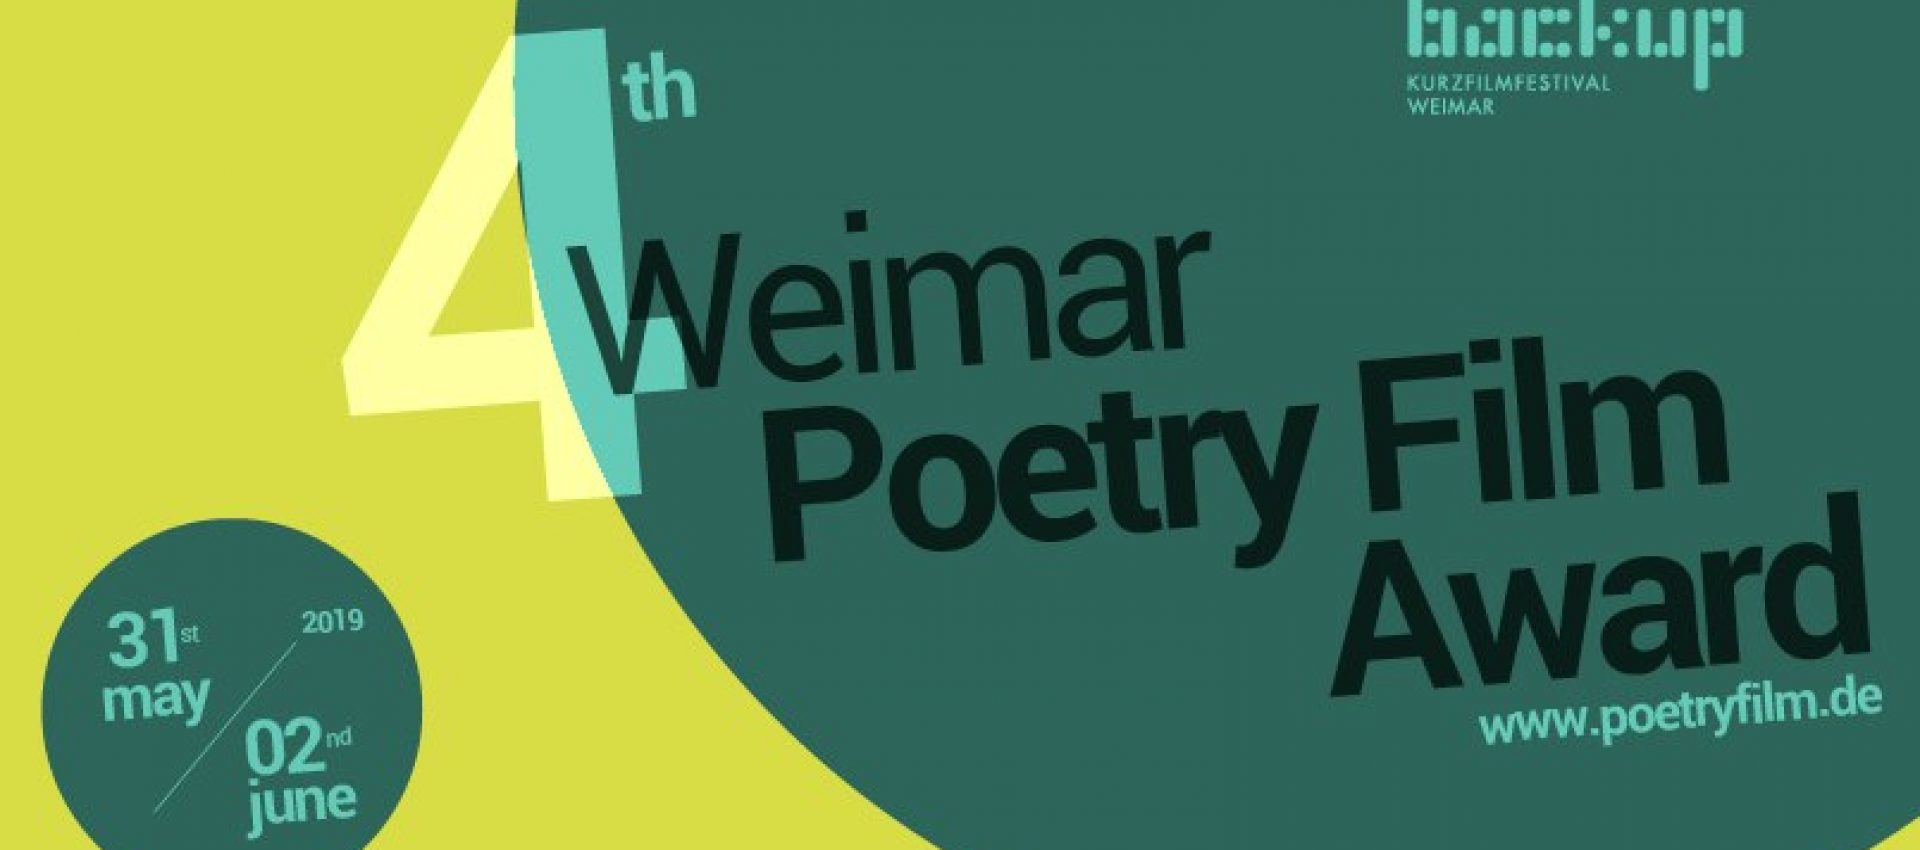 International Premiere of Verses&Frames at Weimar Poetryfilm Award